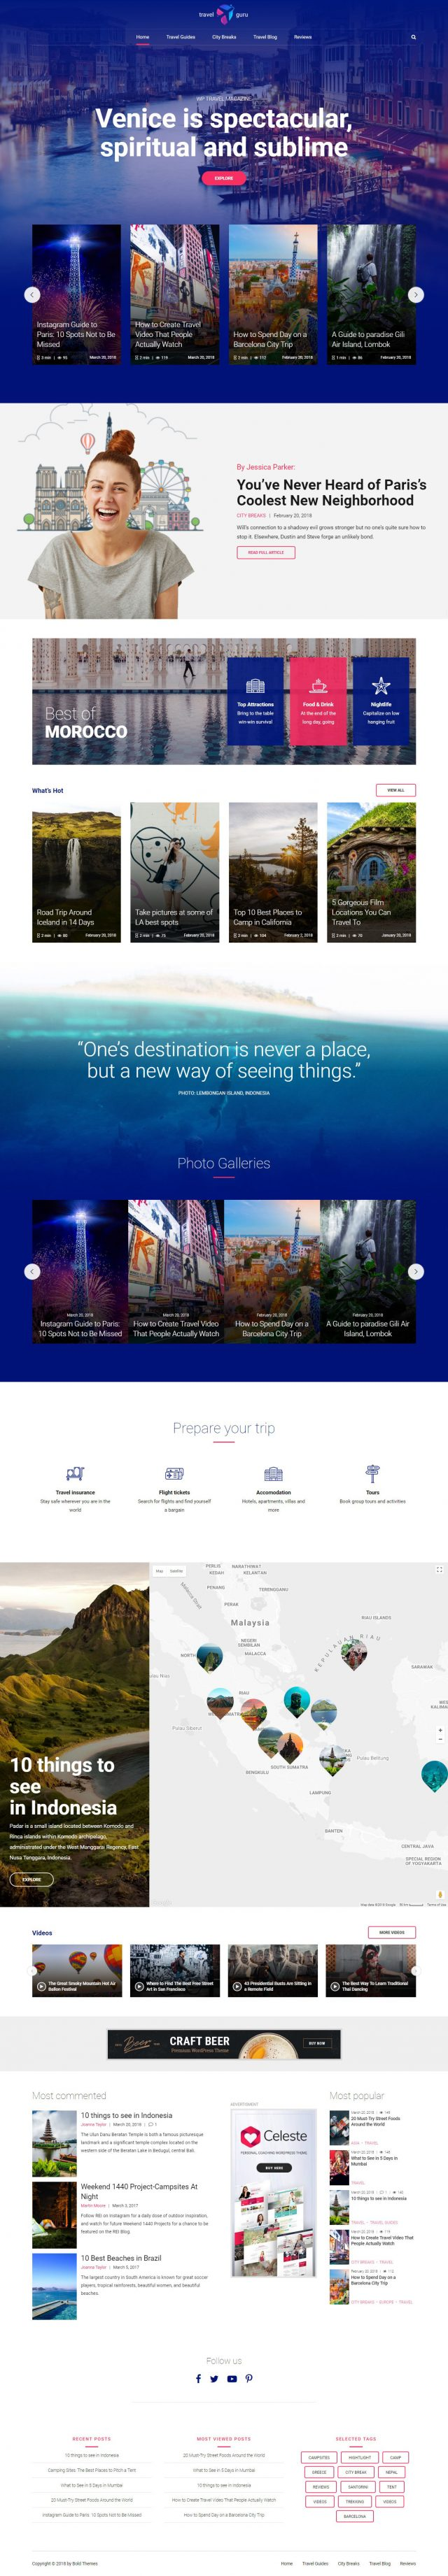 newstar wordpress theme travel magazine homepage layout variant